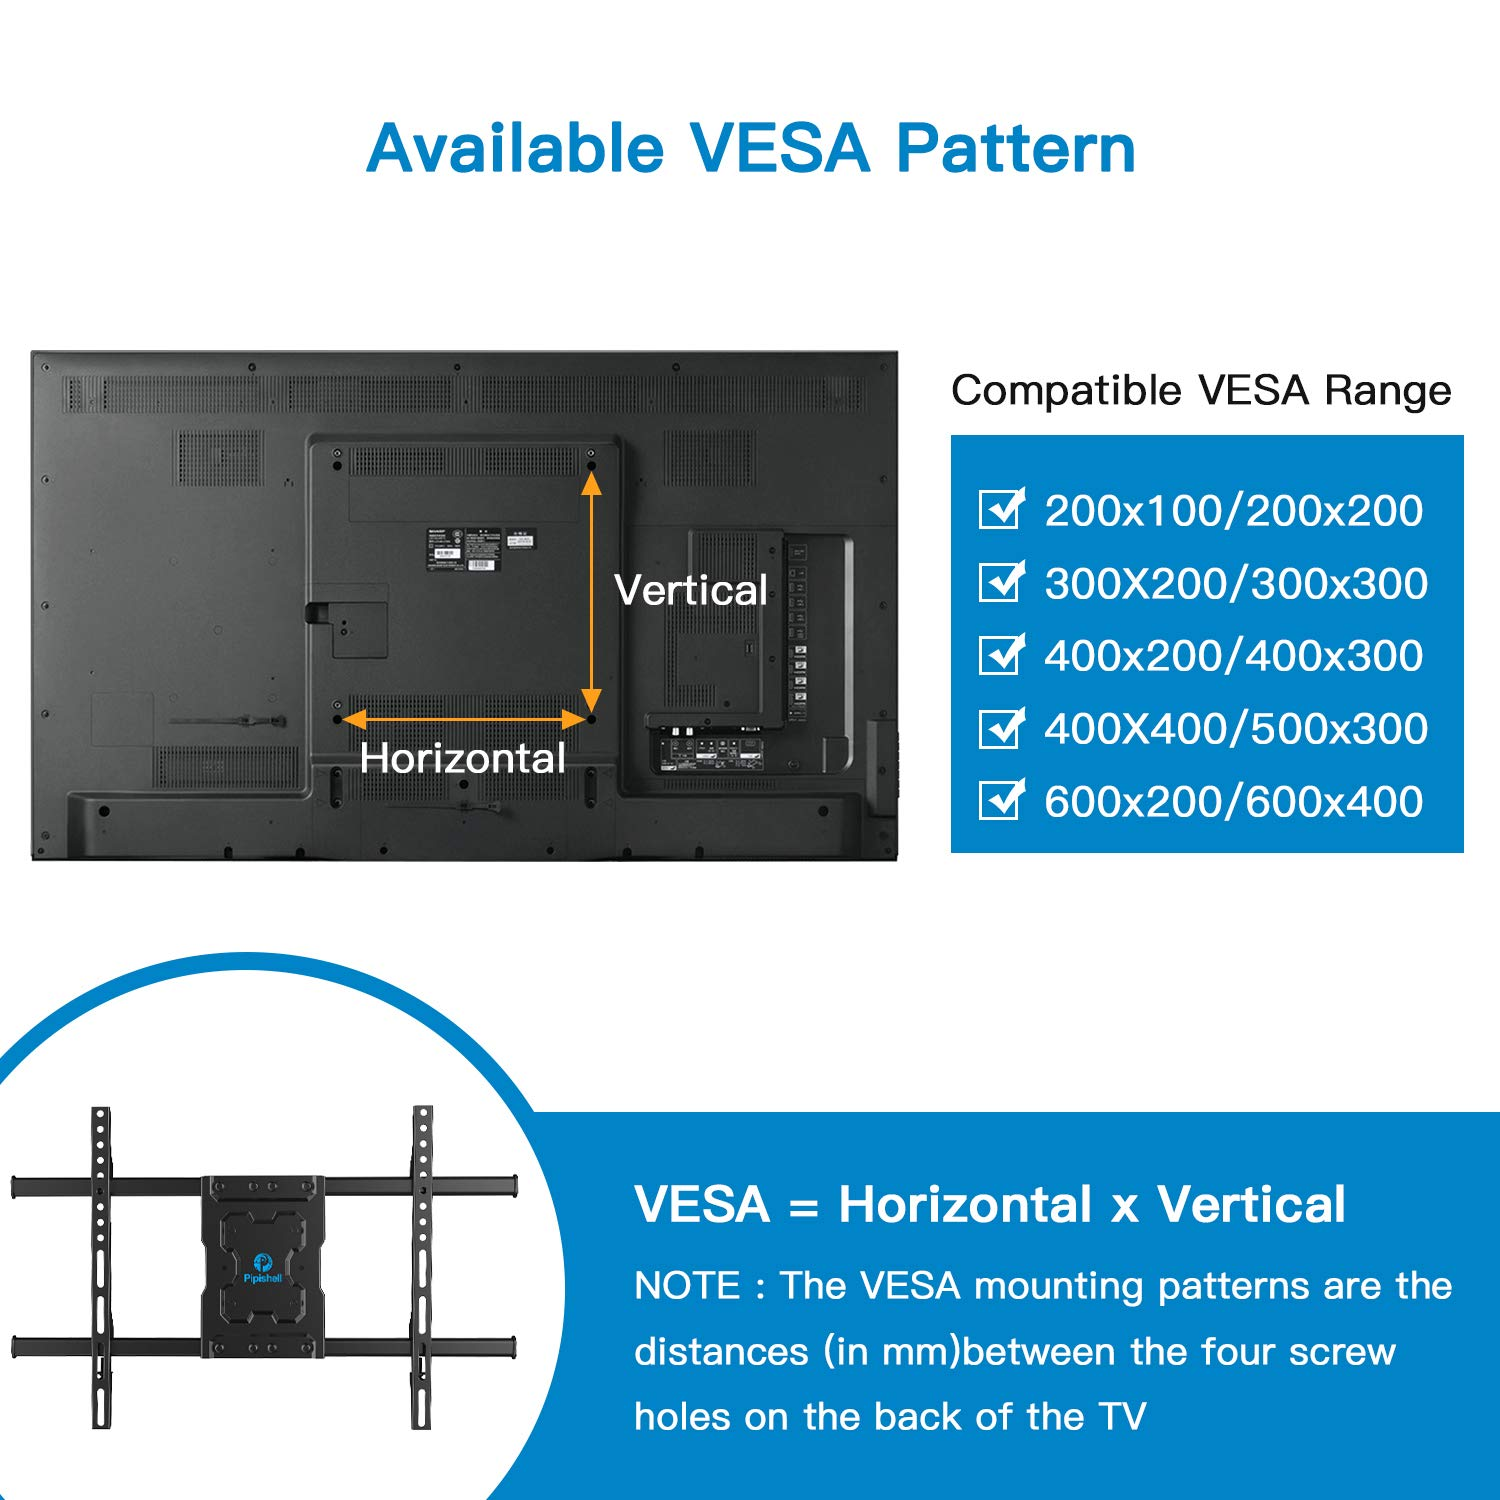 Full Motion TV Wall Mount Bracket Dual Articulating Arms Swivels Tilts Rotation for Most 37-70 Inch LED, LCD, OLED Flat&Curved TVs, Holds up to 132lbs, Max VESA 600x400mm by Pipishell by Pipishell (Image #4)